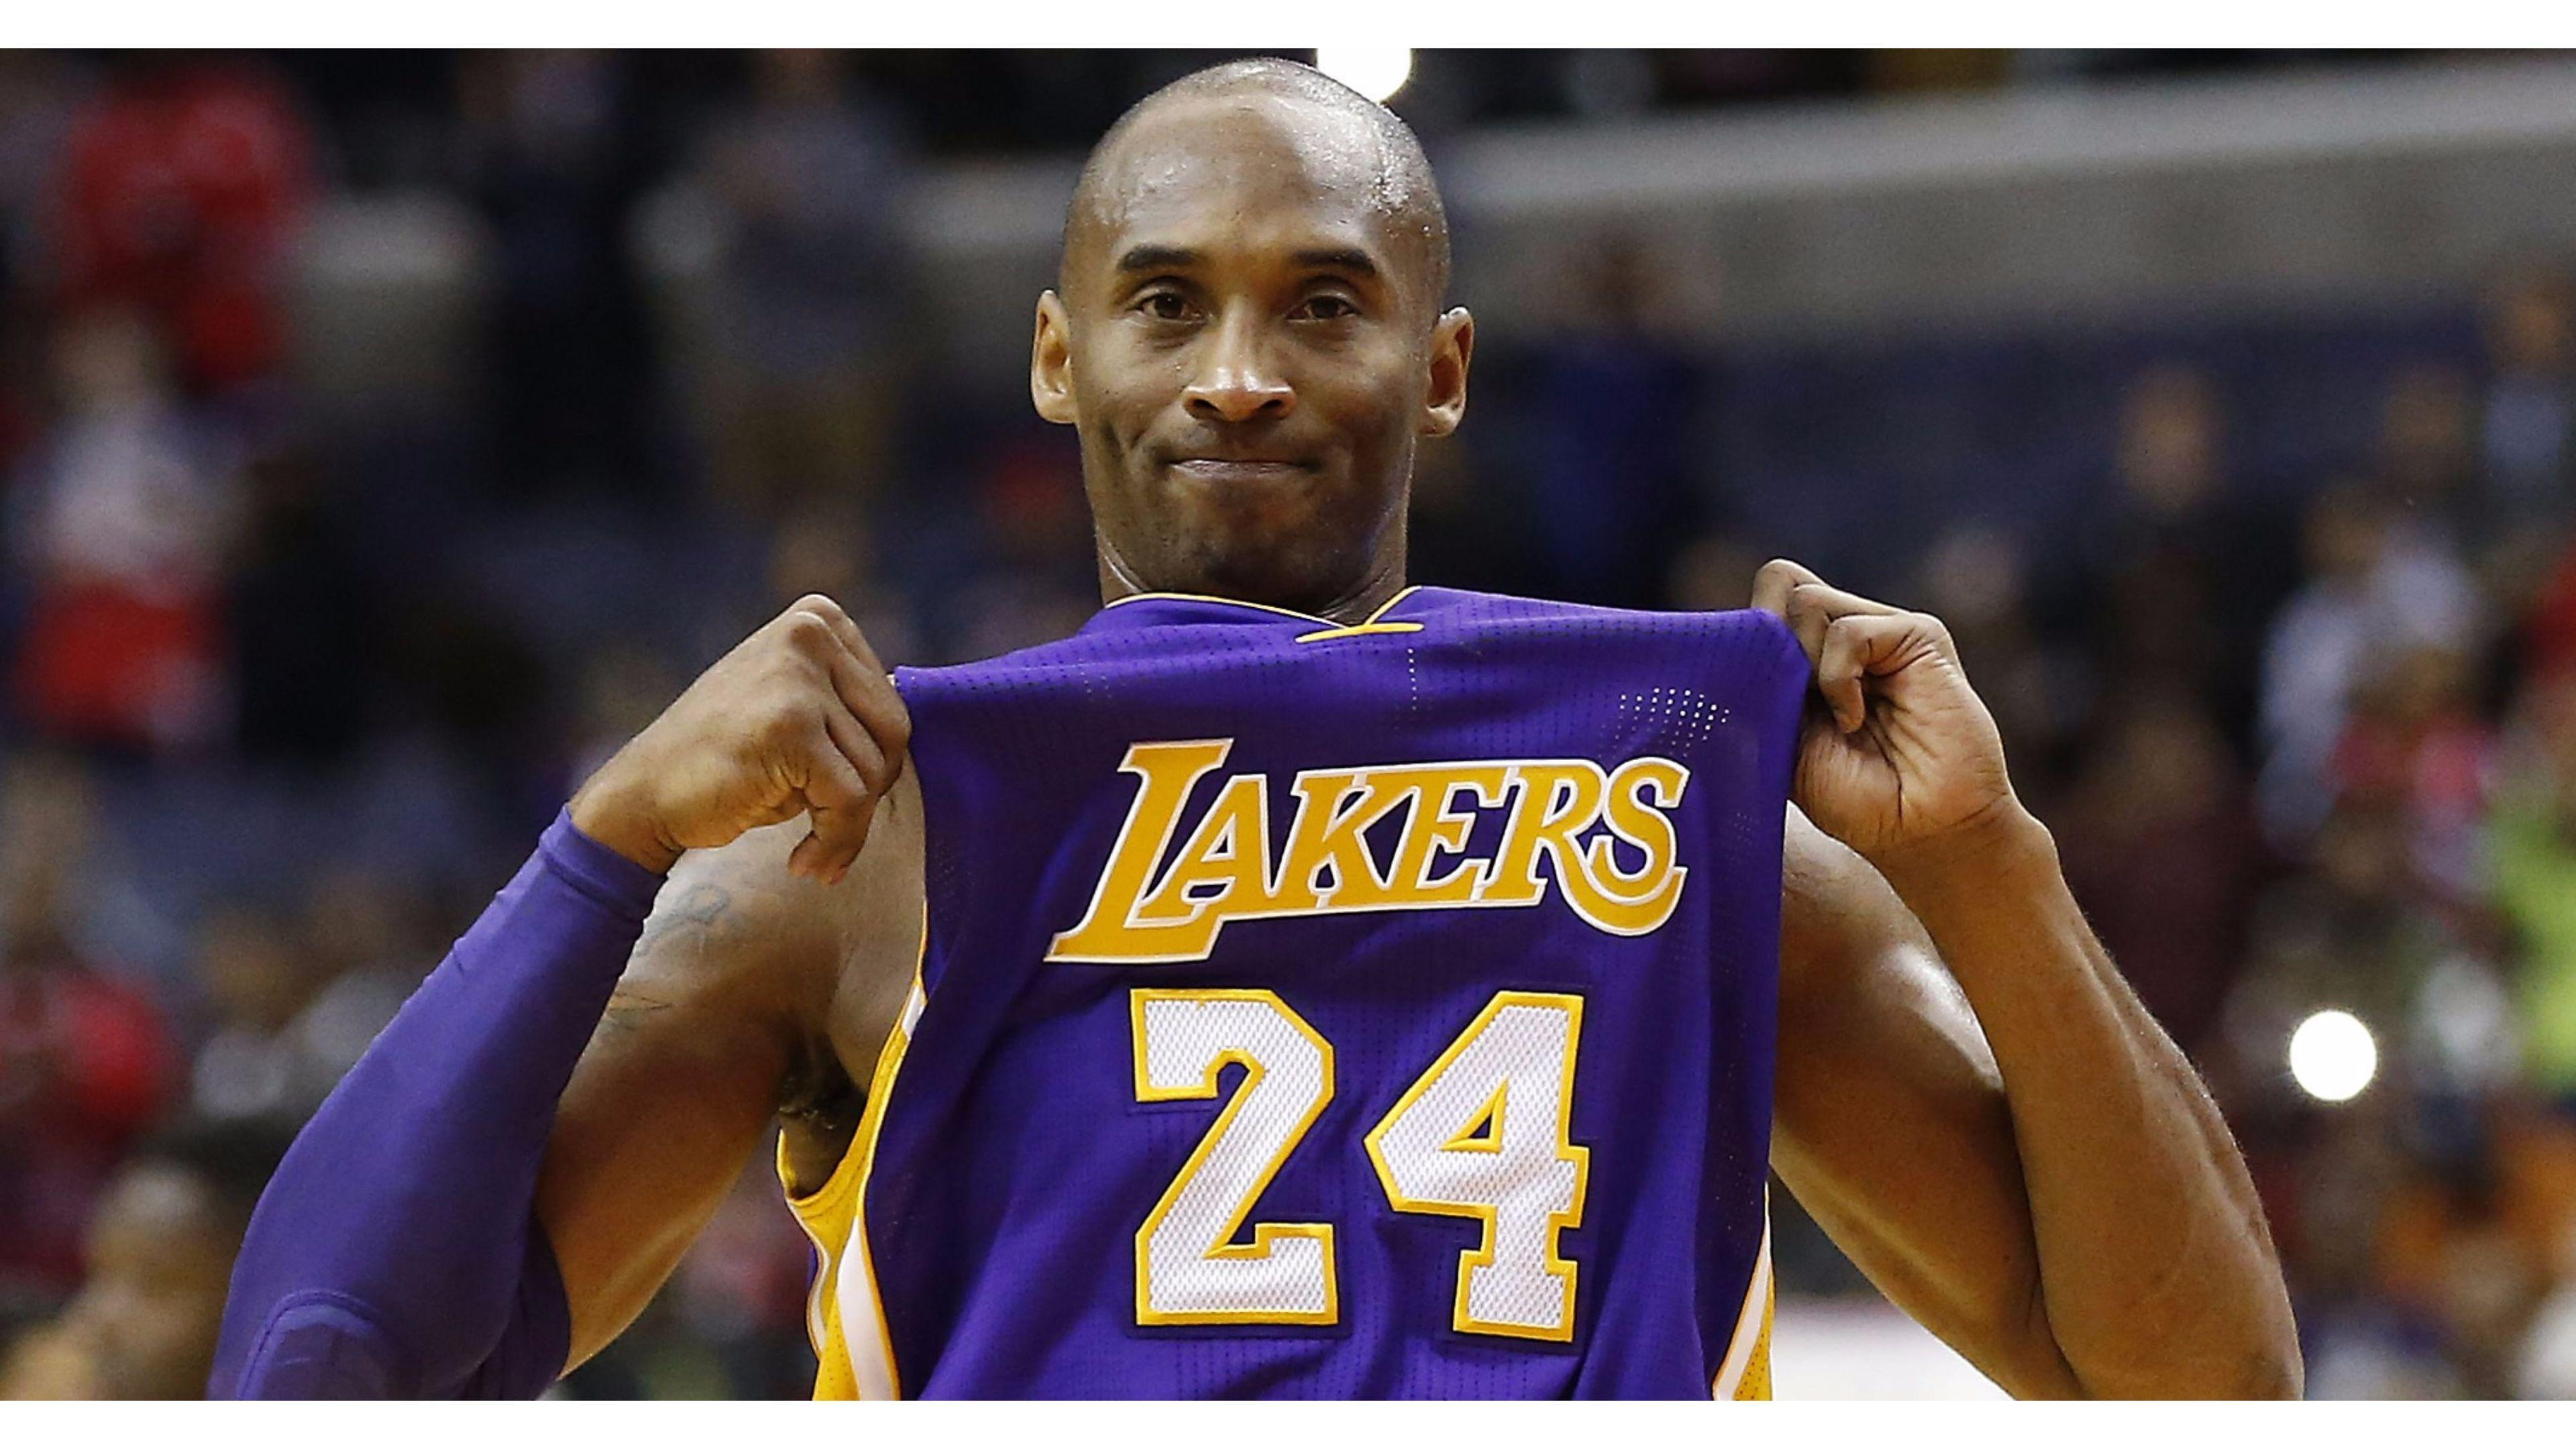 Get complete career stats for small forward Kobe Bryant on ESPNcom